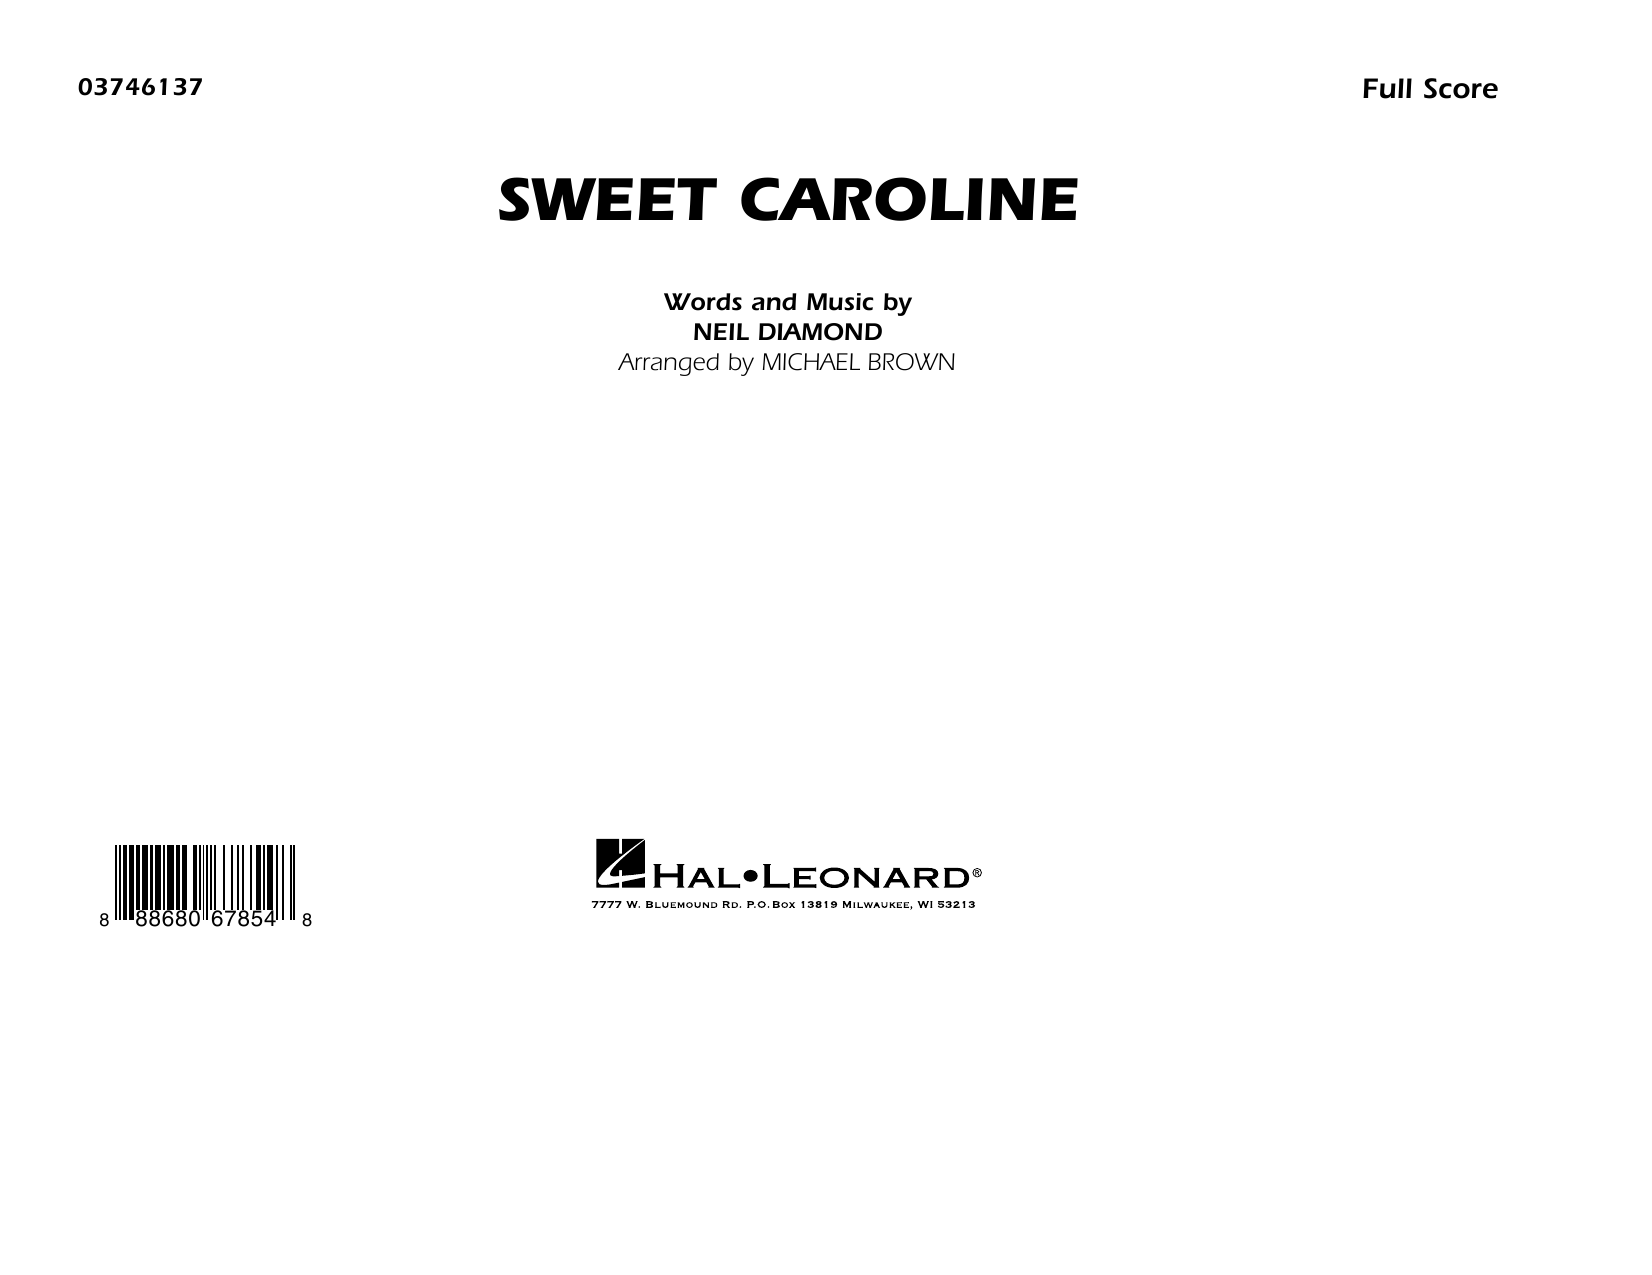 Sweet Caroline - Conductor Score (Full Score) Partituras Digitales